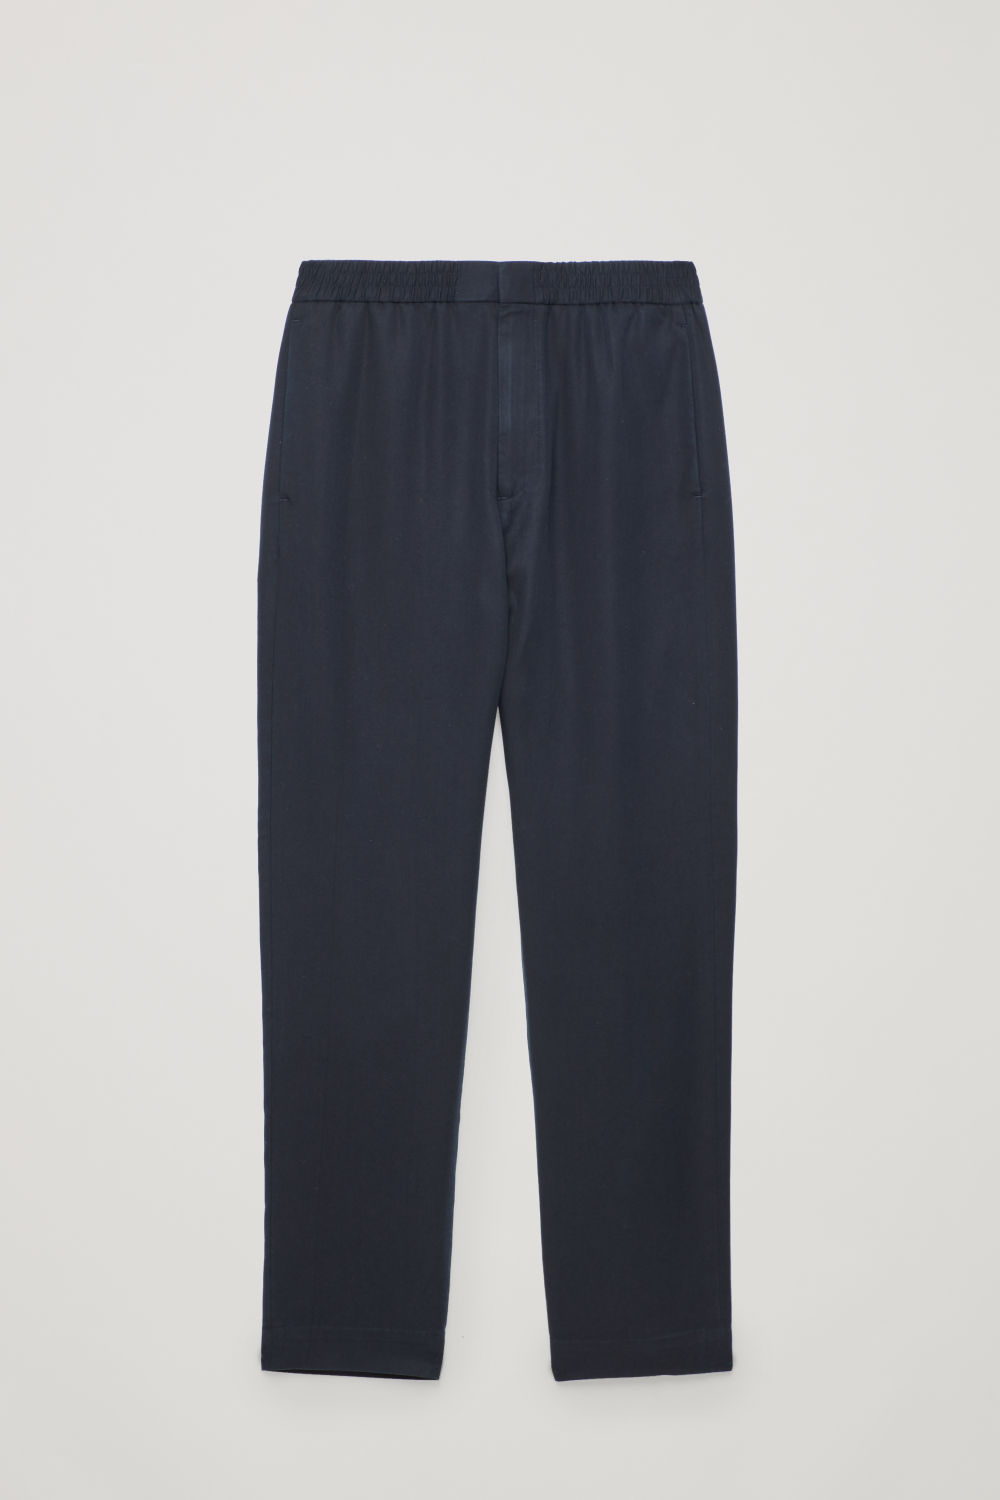 ELASTICATED TAILORED TROUSERS